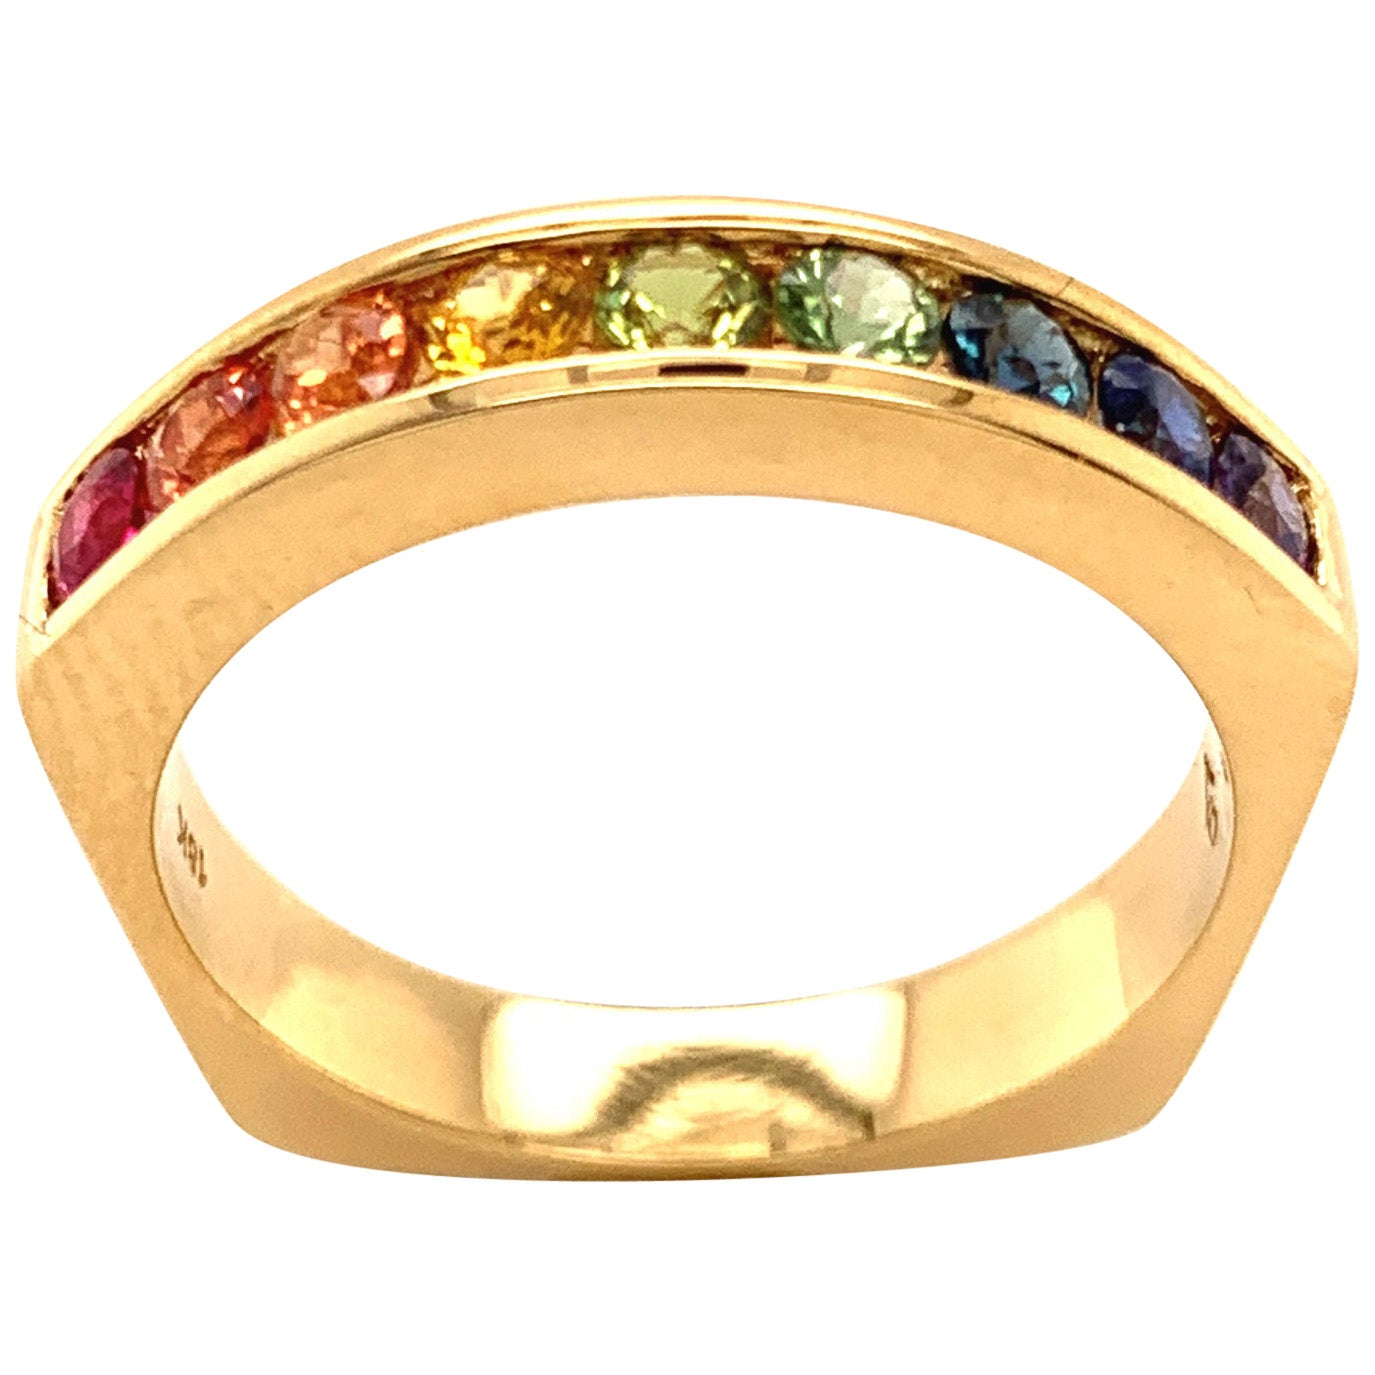 Multi-Color Sapphire Ring in 18 Karat Gold